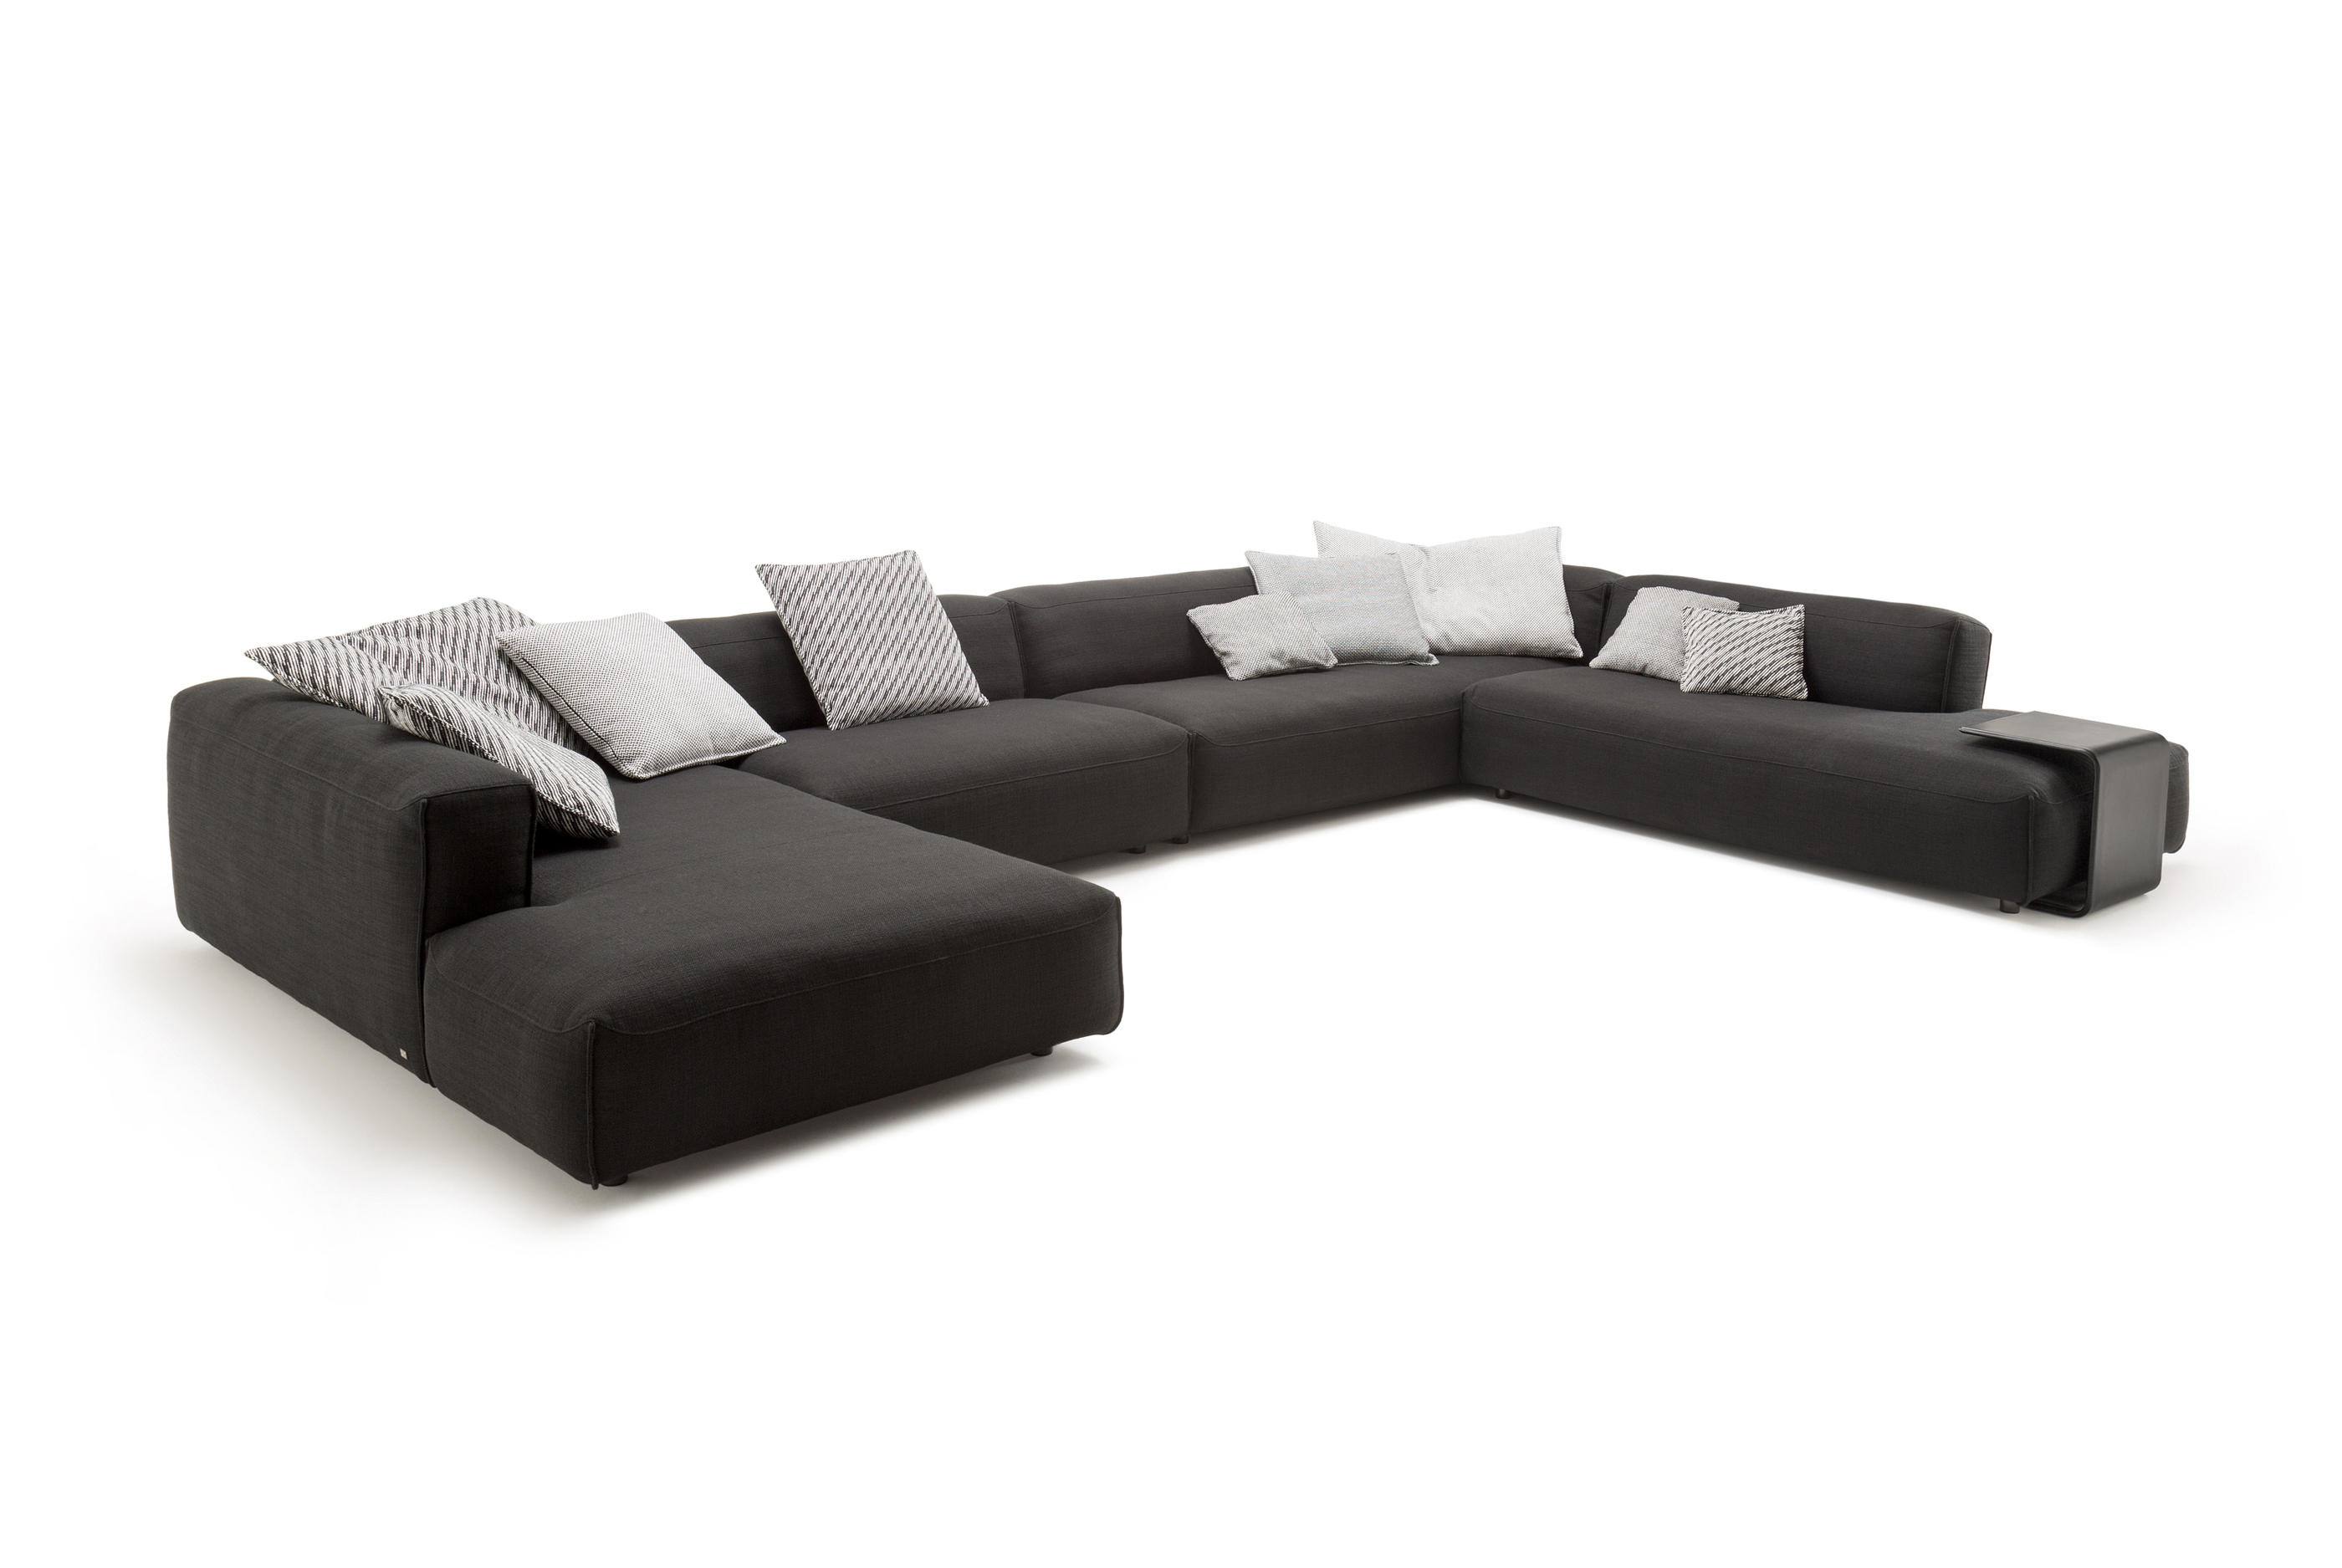 rolf benz 552 mio modular seating systems from rolf benz architonic. Black Bedroom Furniture Sets. Home Design Ideas